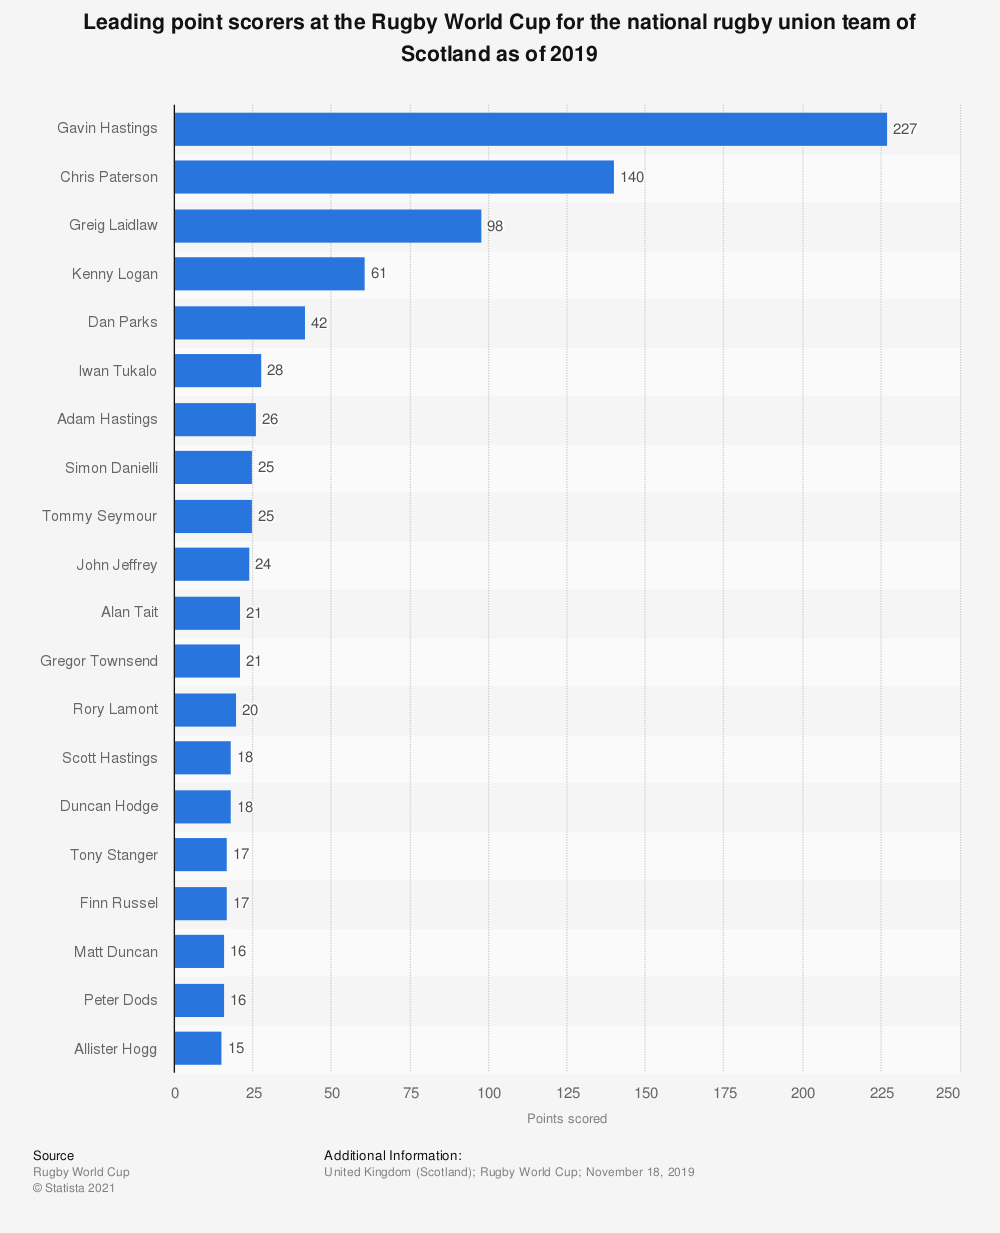 Statistic: Leading point scorers at the Rugby World Cup for the national rugby union team of Scotland as of 2019 | Statista